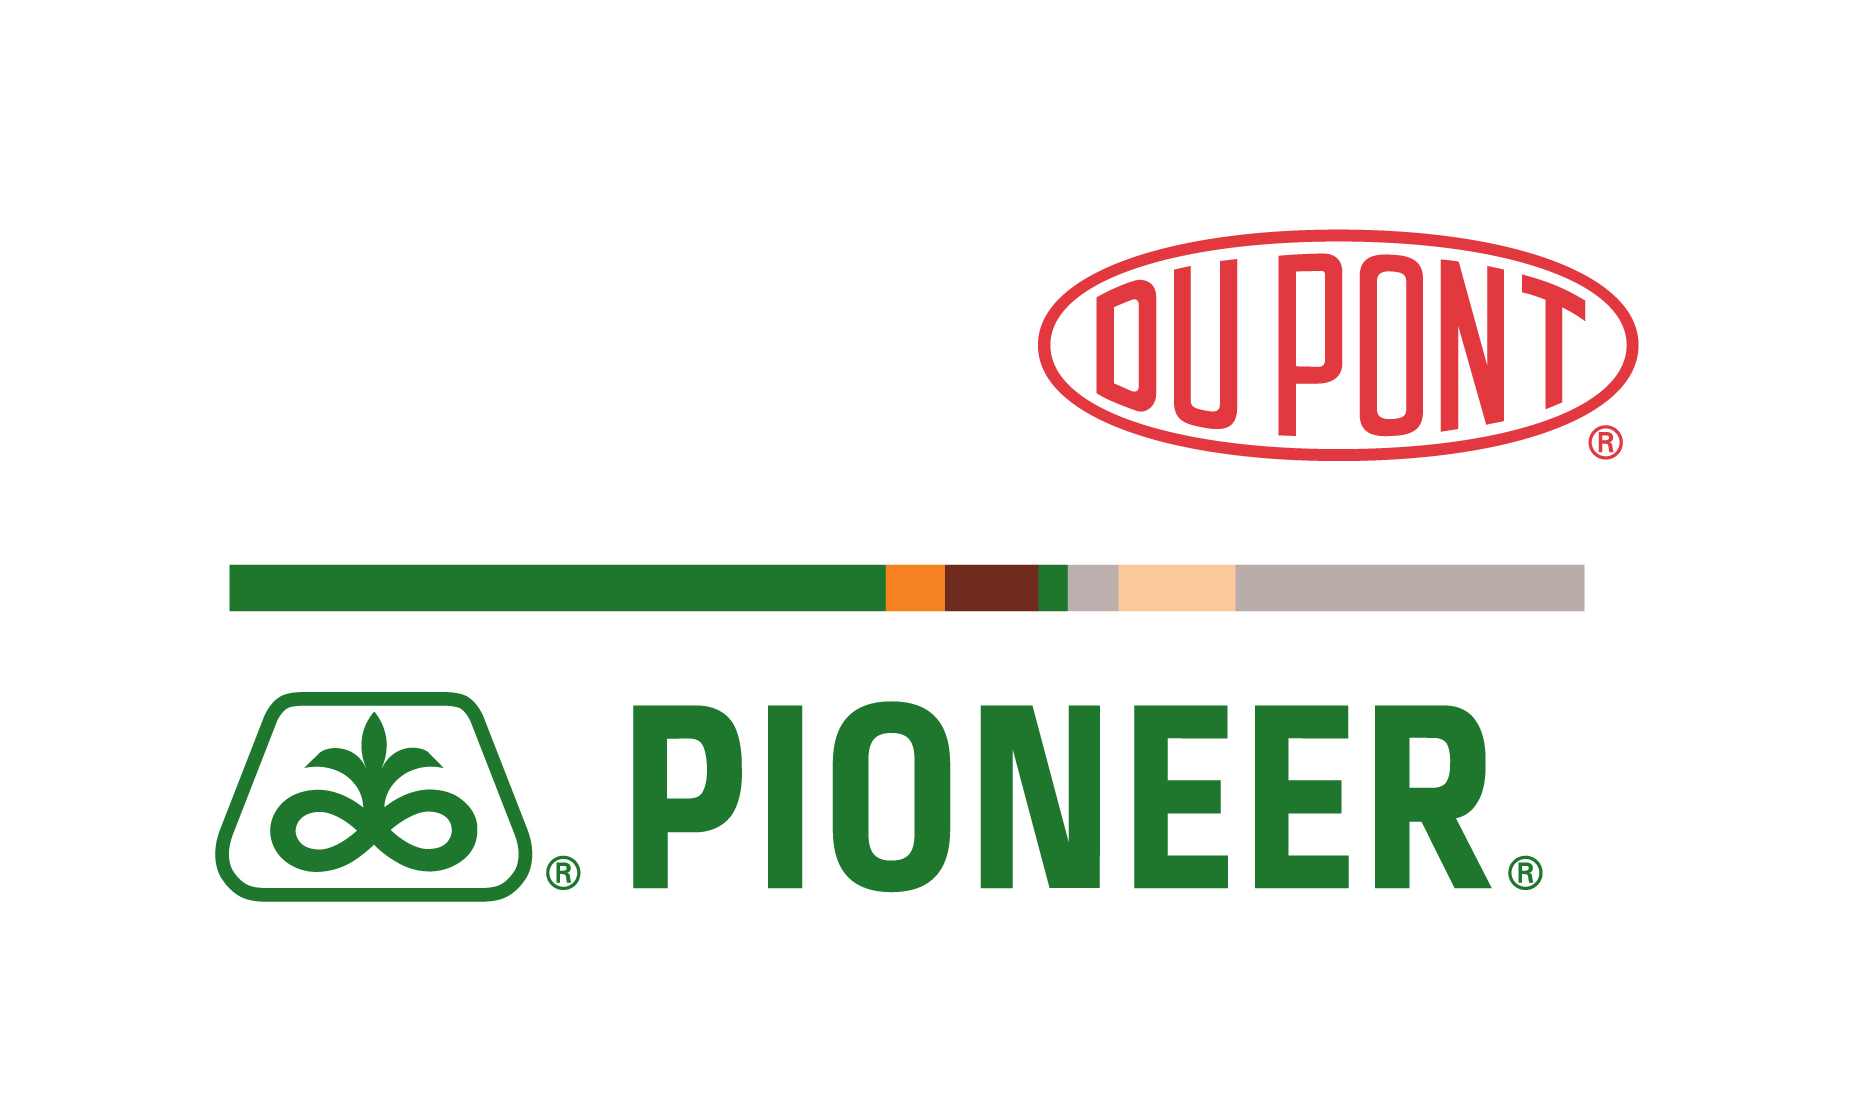 dupont technology management The implementation of management systems has been a common approach over the past 30 years to improve performance in areas such as quality, safety and environmental management.